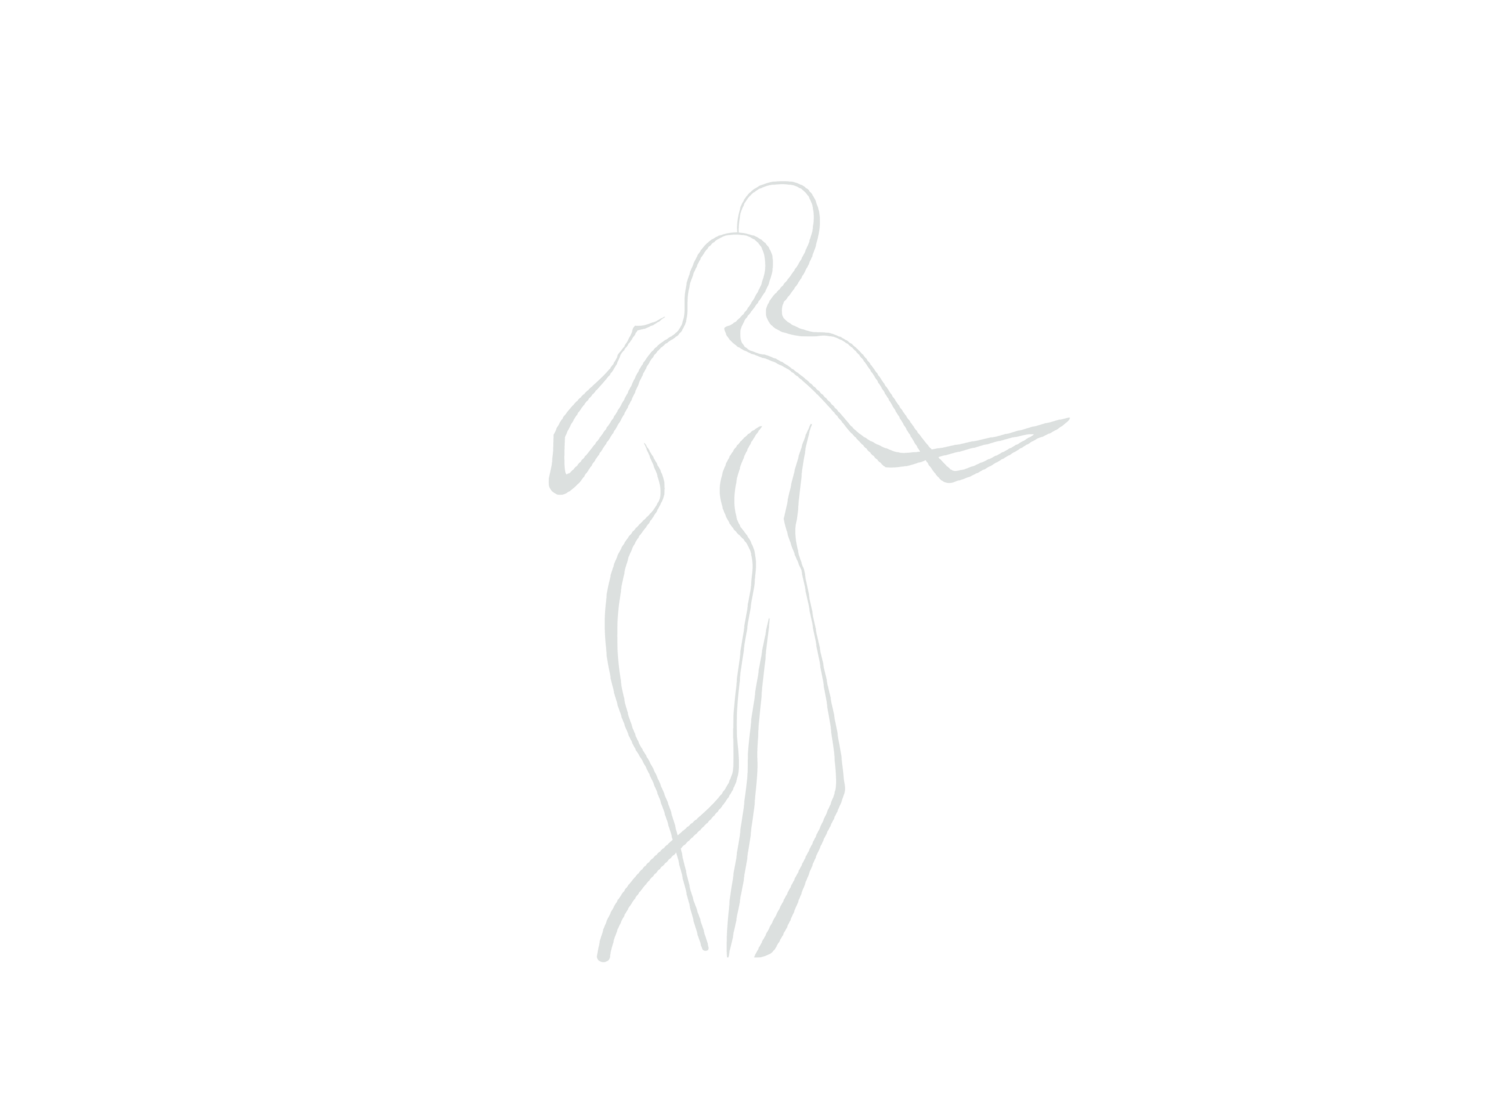 Gay Ballroom Chicago